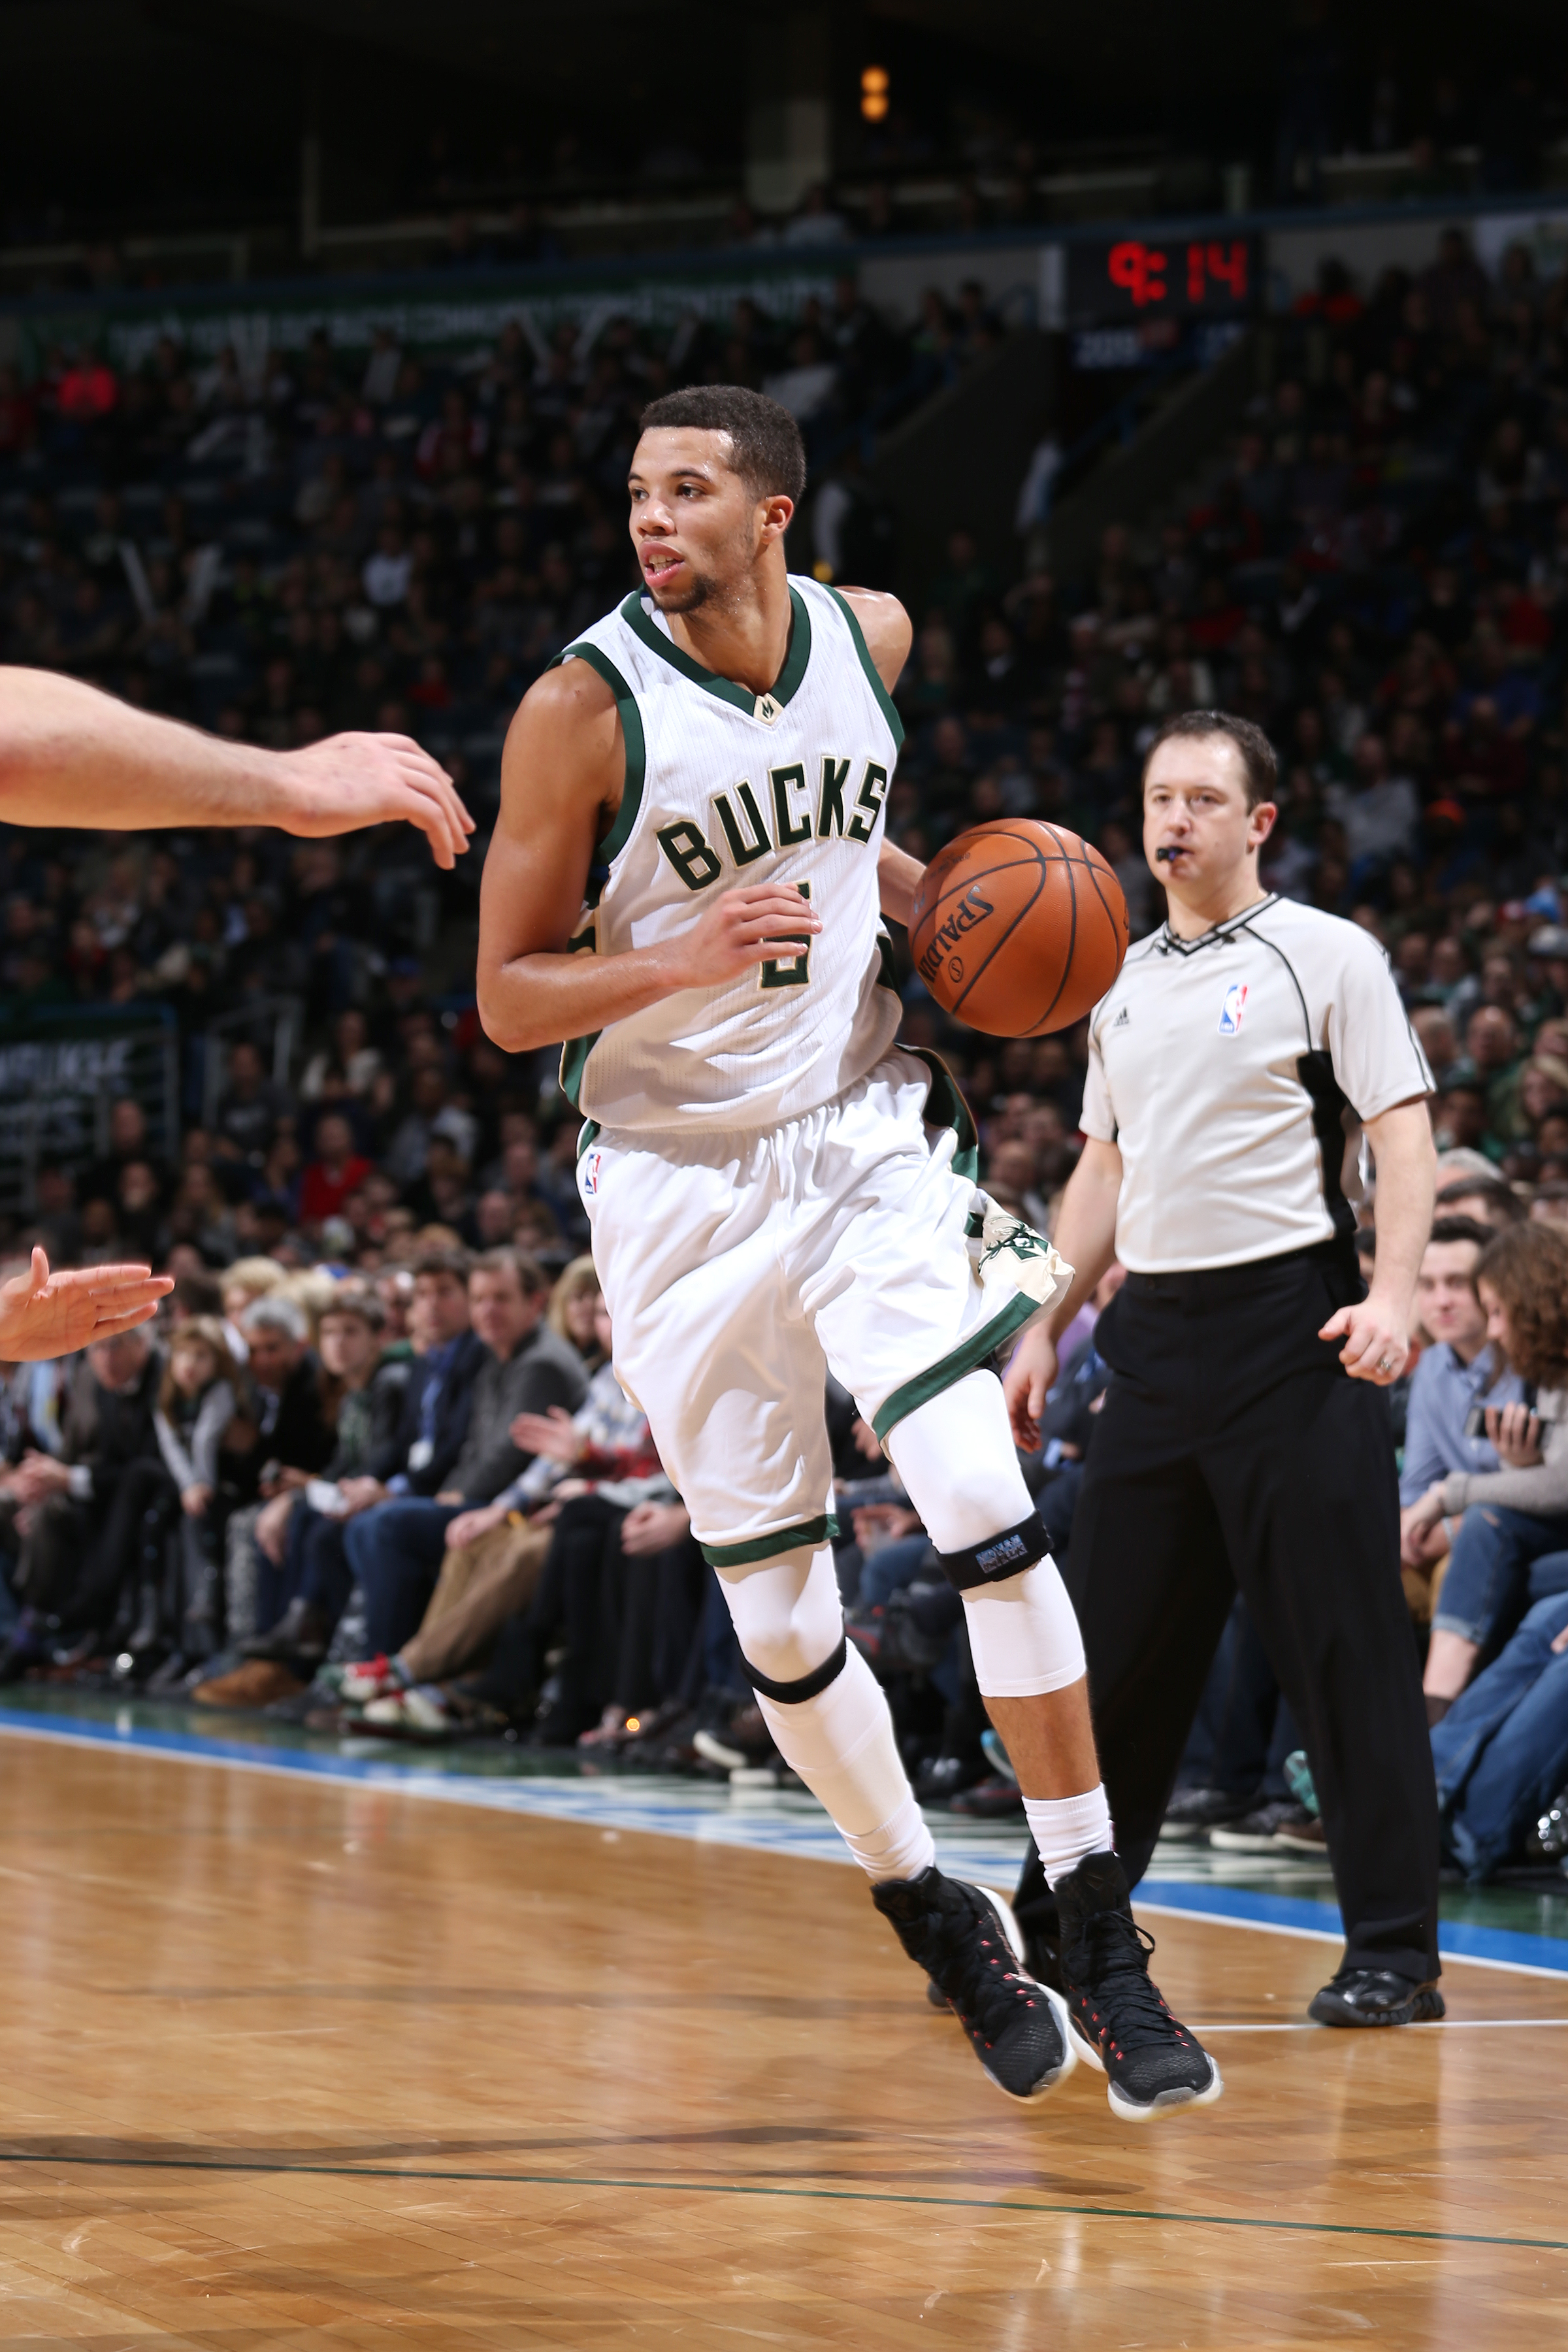 Milwaukee, WI - JANUARY 8: Michael Carter-Williams #5 of the Milwaukee Bucks handles the ball during the game against the Dallas Mavericks on January 8, 2016 at the BMO Harris Bradley Center in Milwaukee, Wisconsin. (Photo by Gary Dineen/NBAE via Getty Im